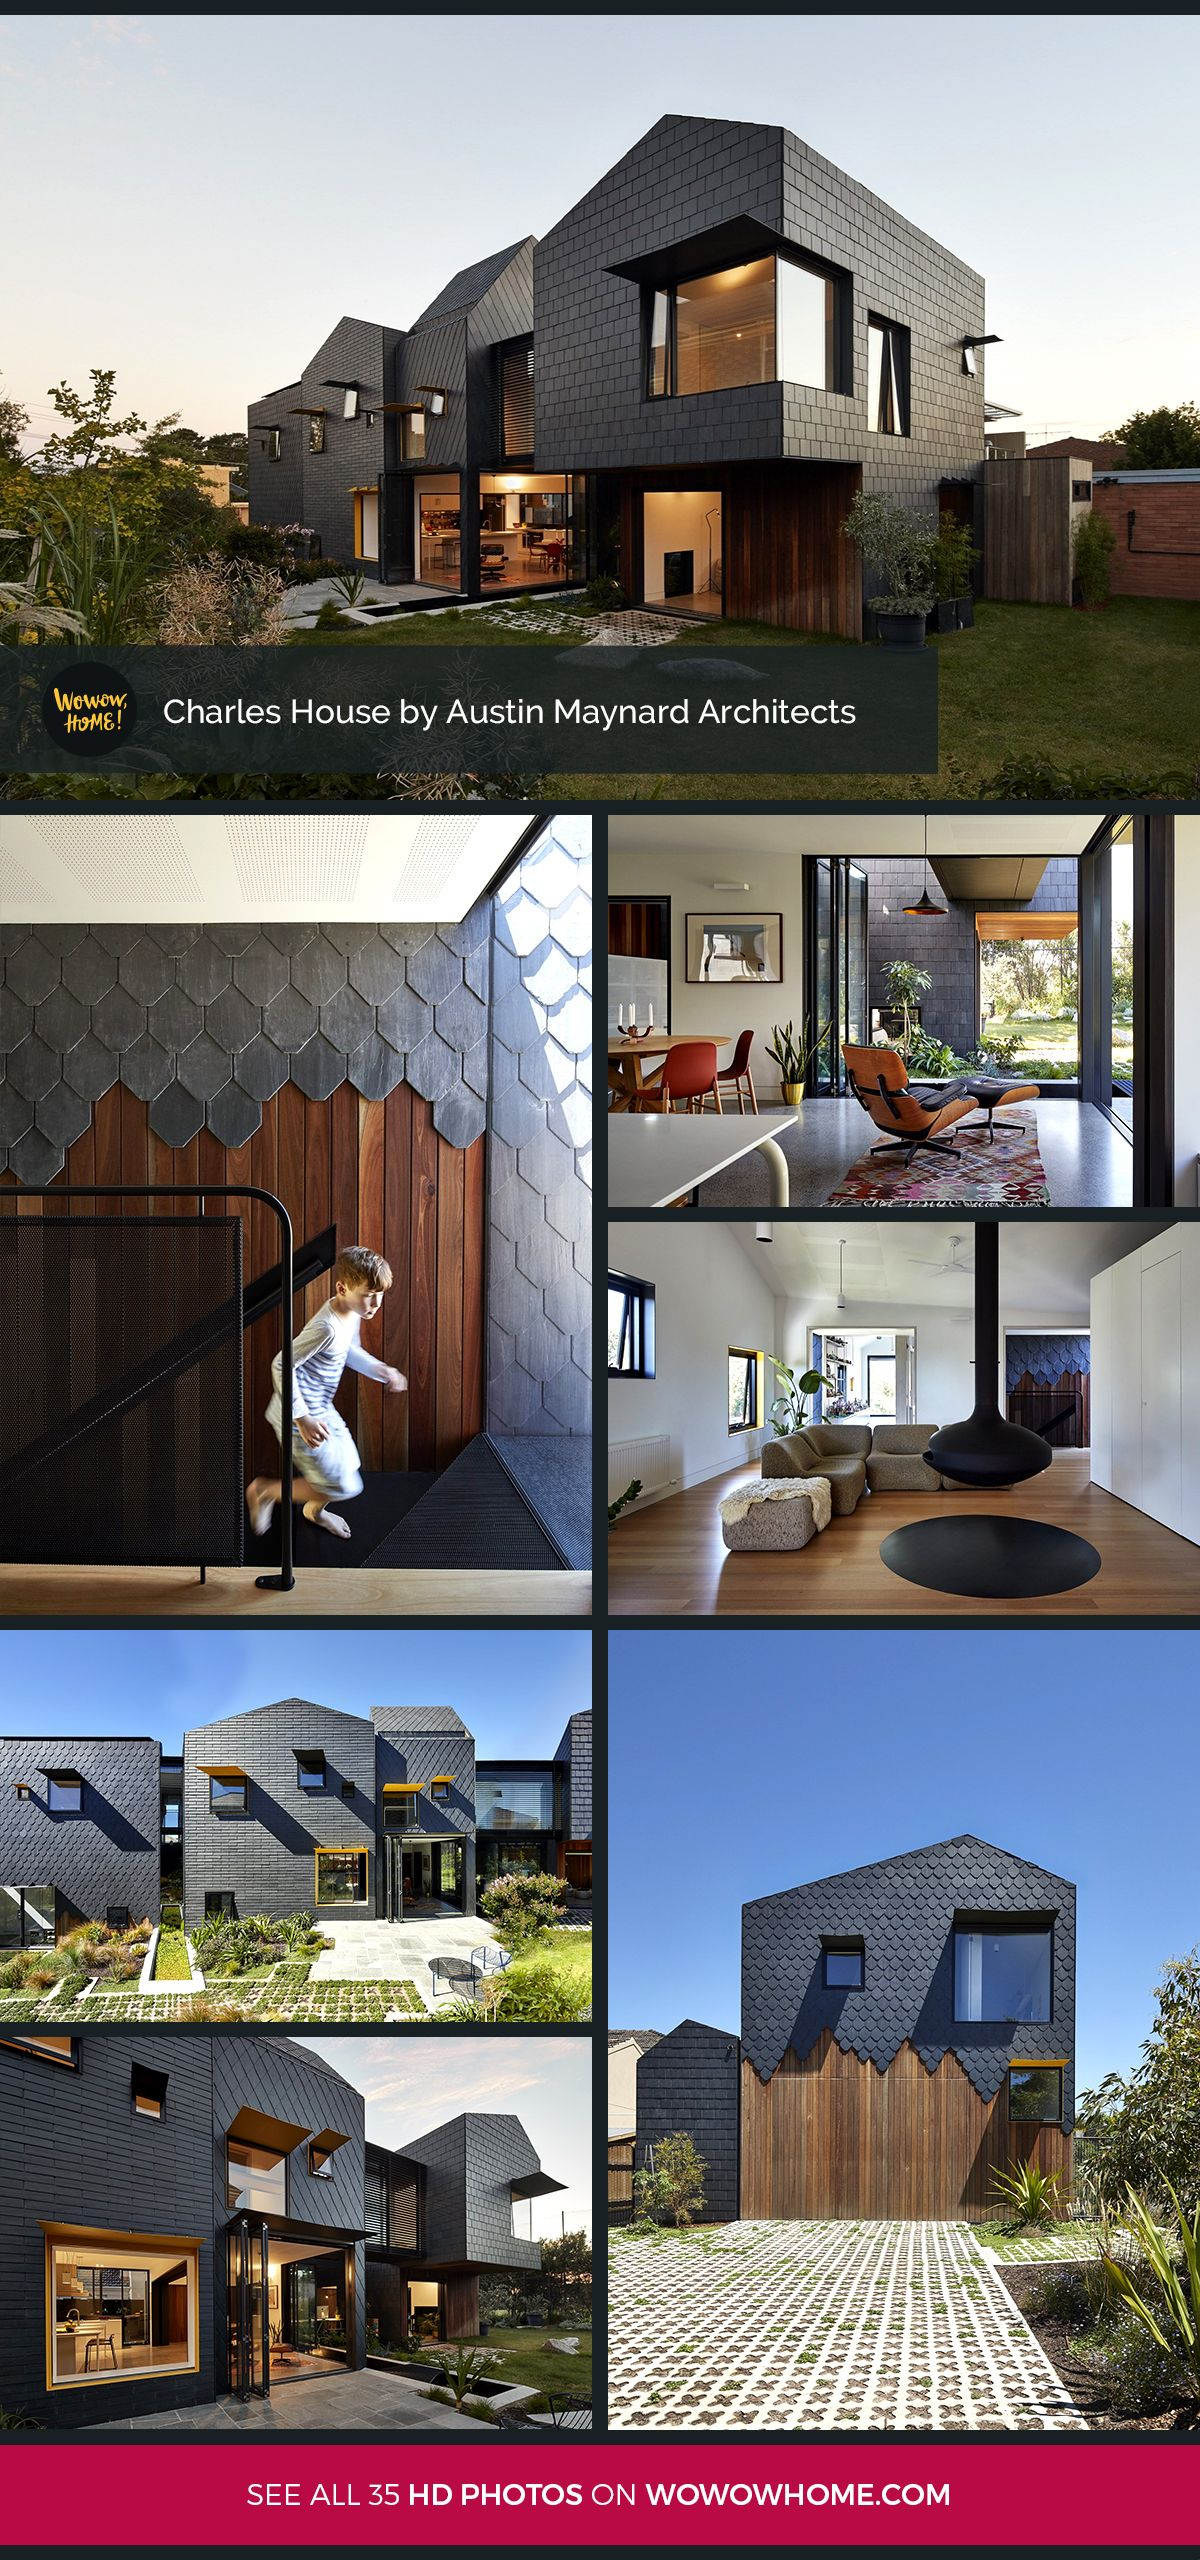 Charles House by Austin Maynard Architects Wowow Home